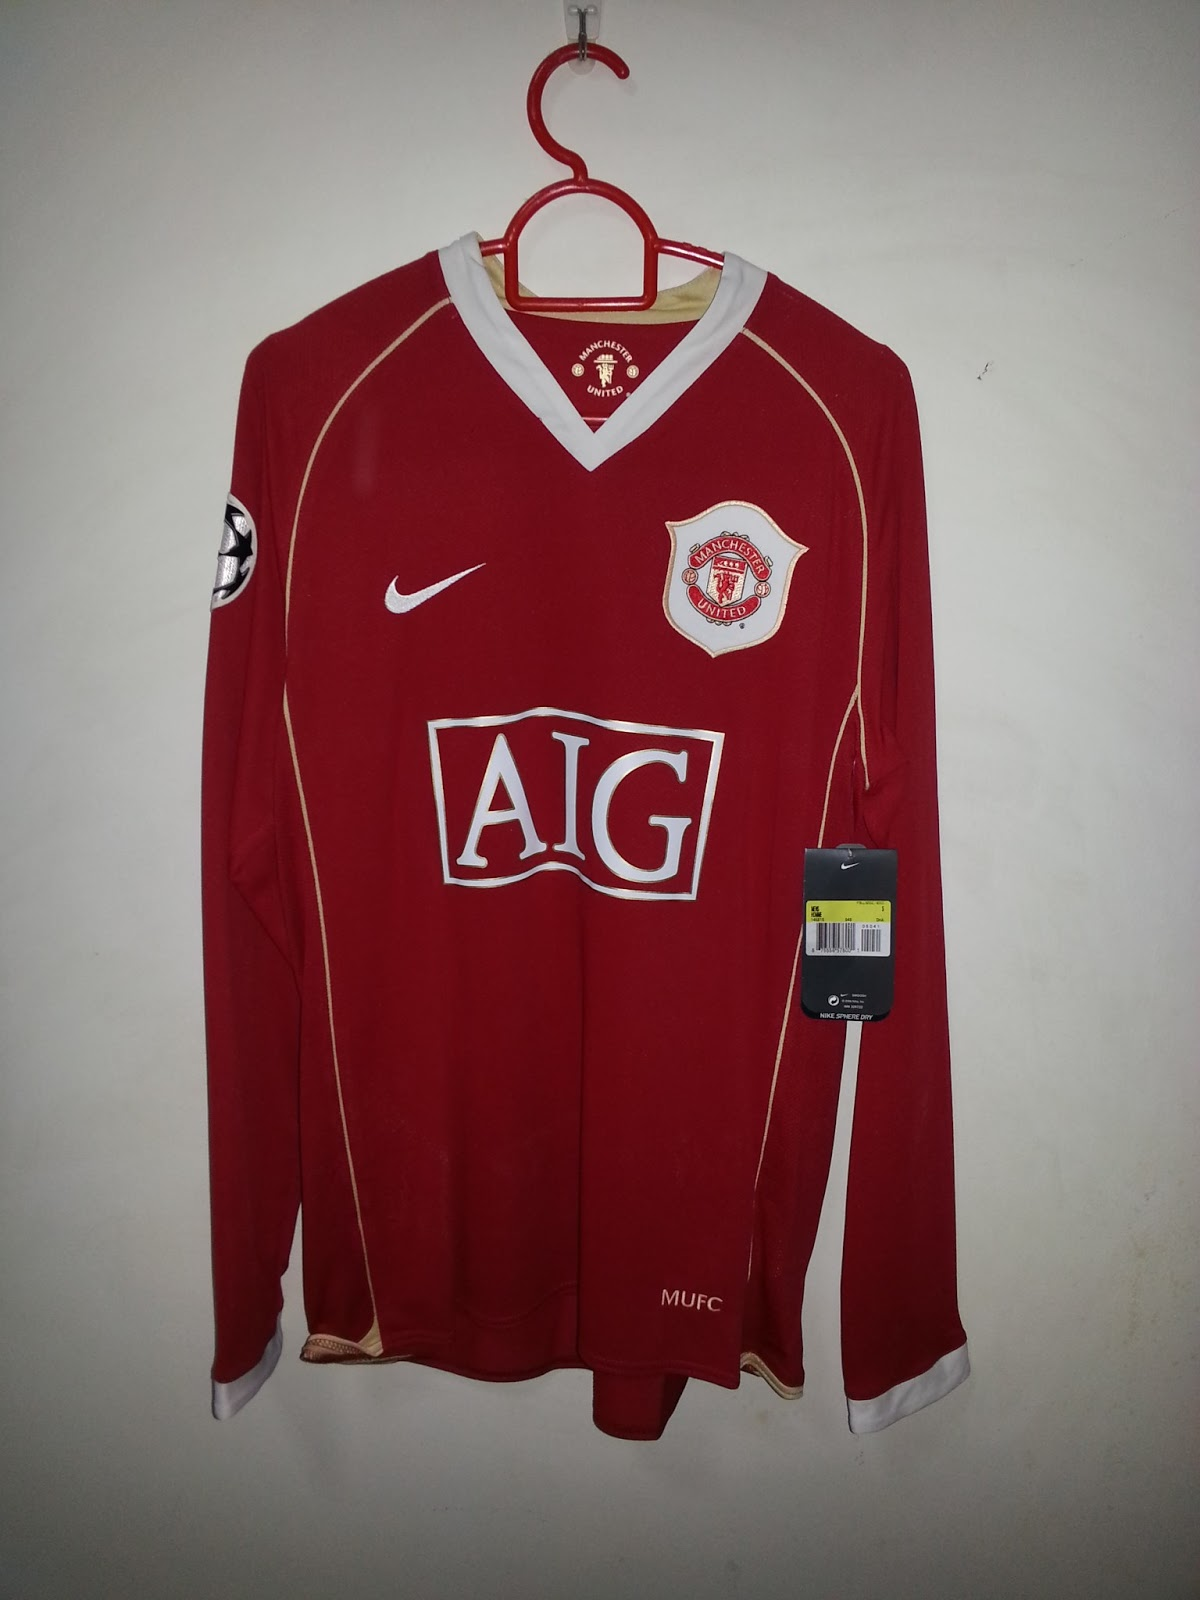 8d7d77769e2 Kits for Sale  2006-07 - Manchester United home shirt LS M BNWT with ...